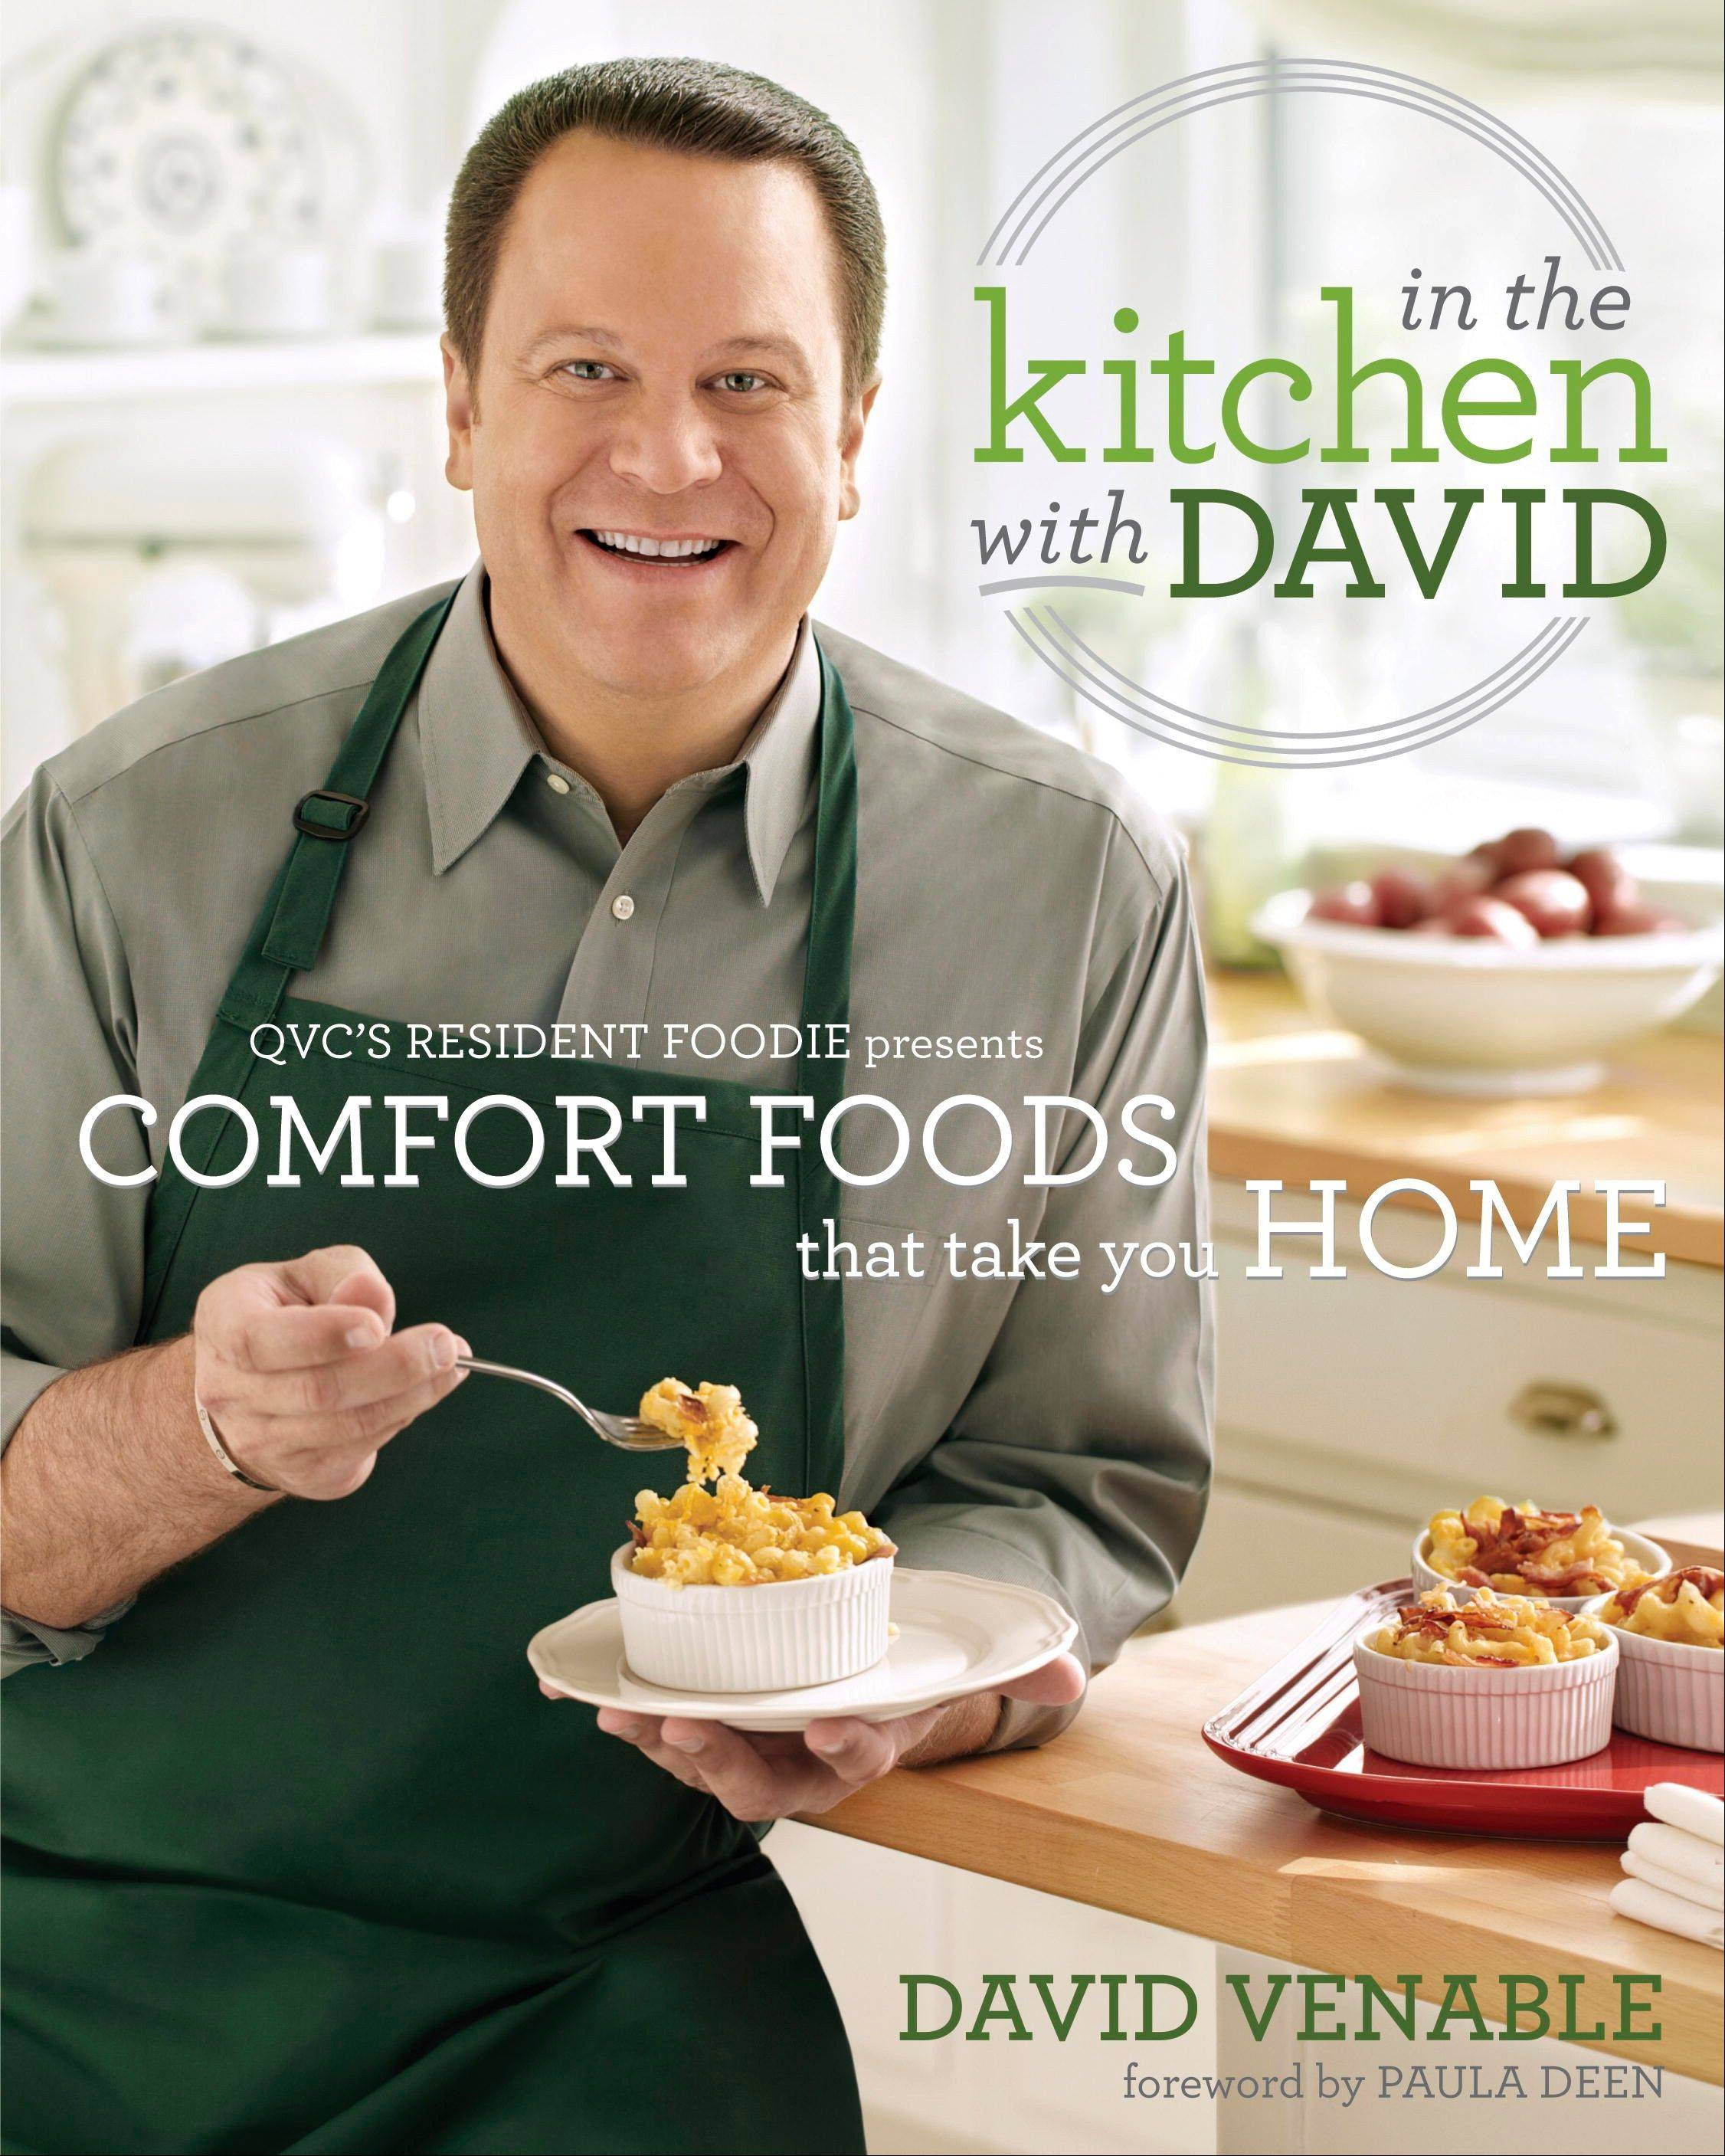 """In the Kitchen with David"" by Dave Venable"